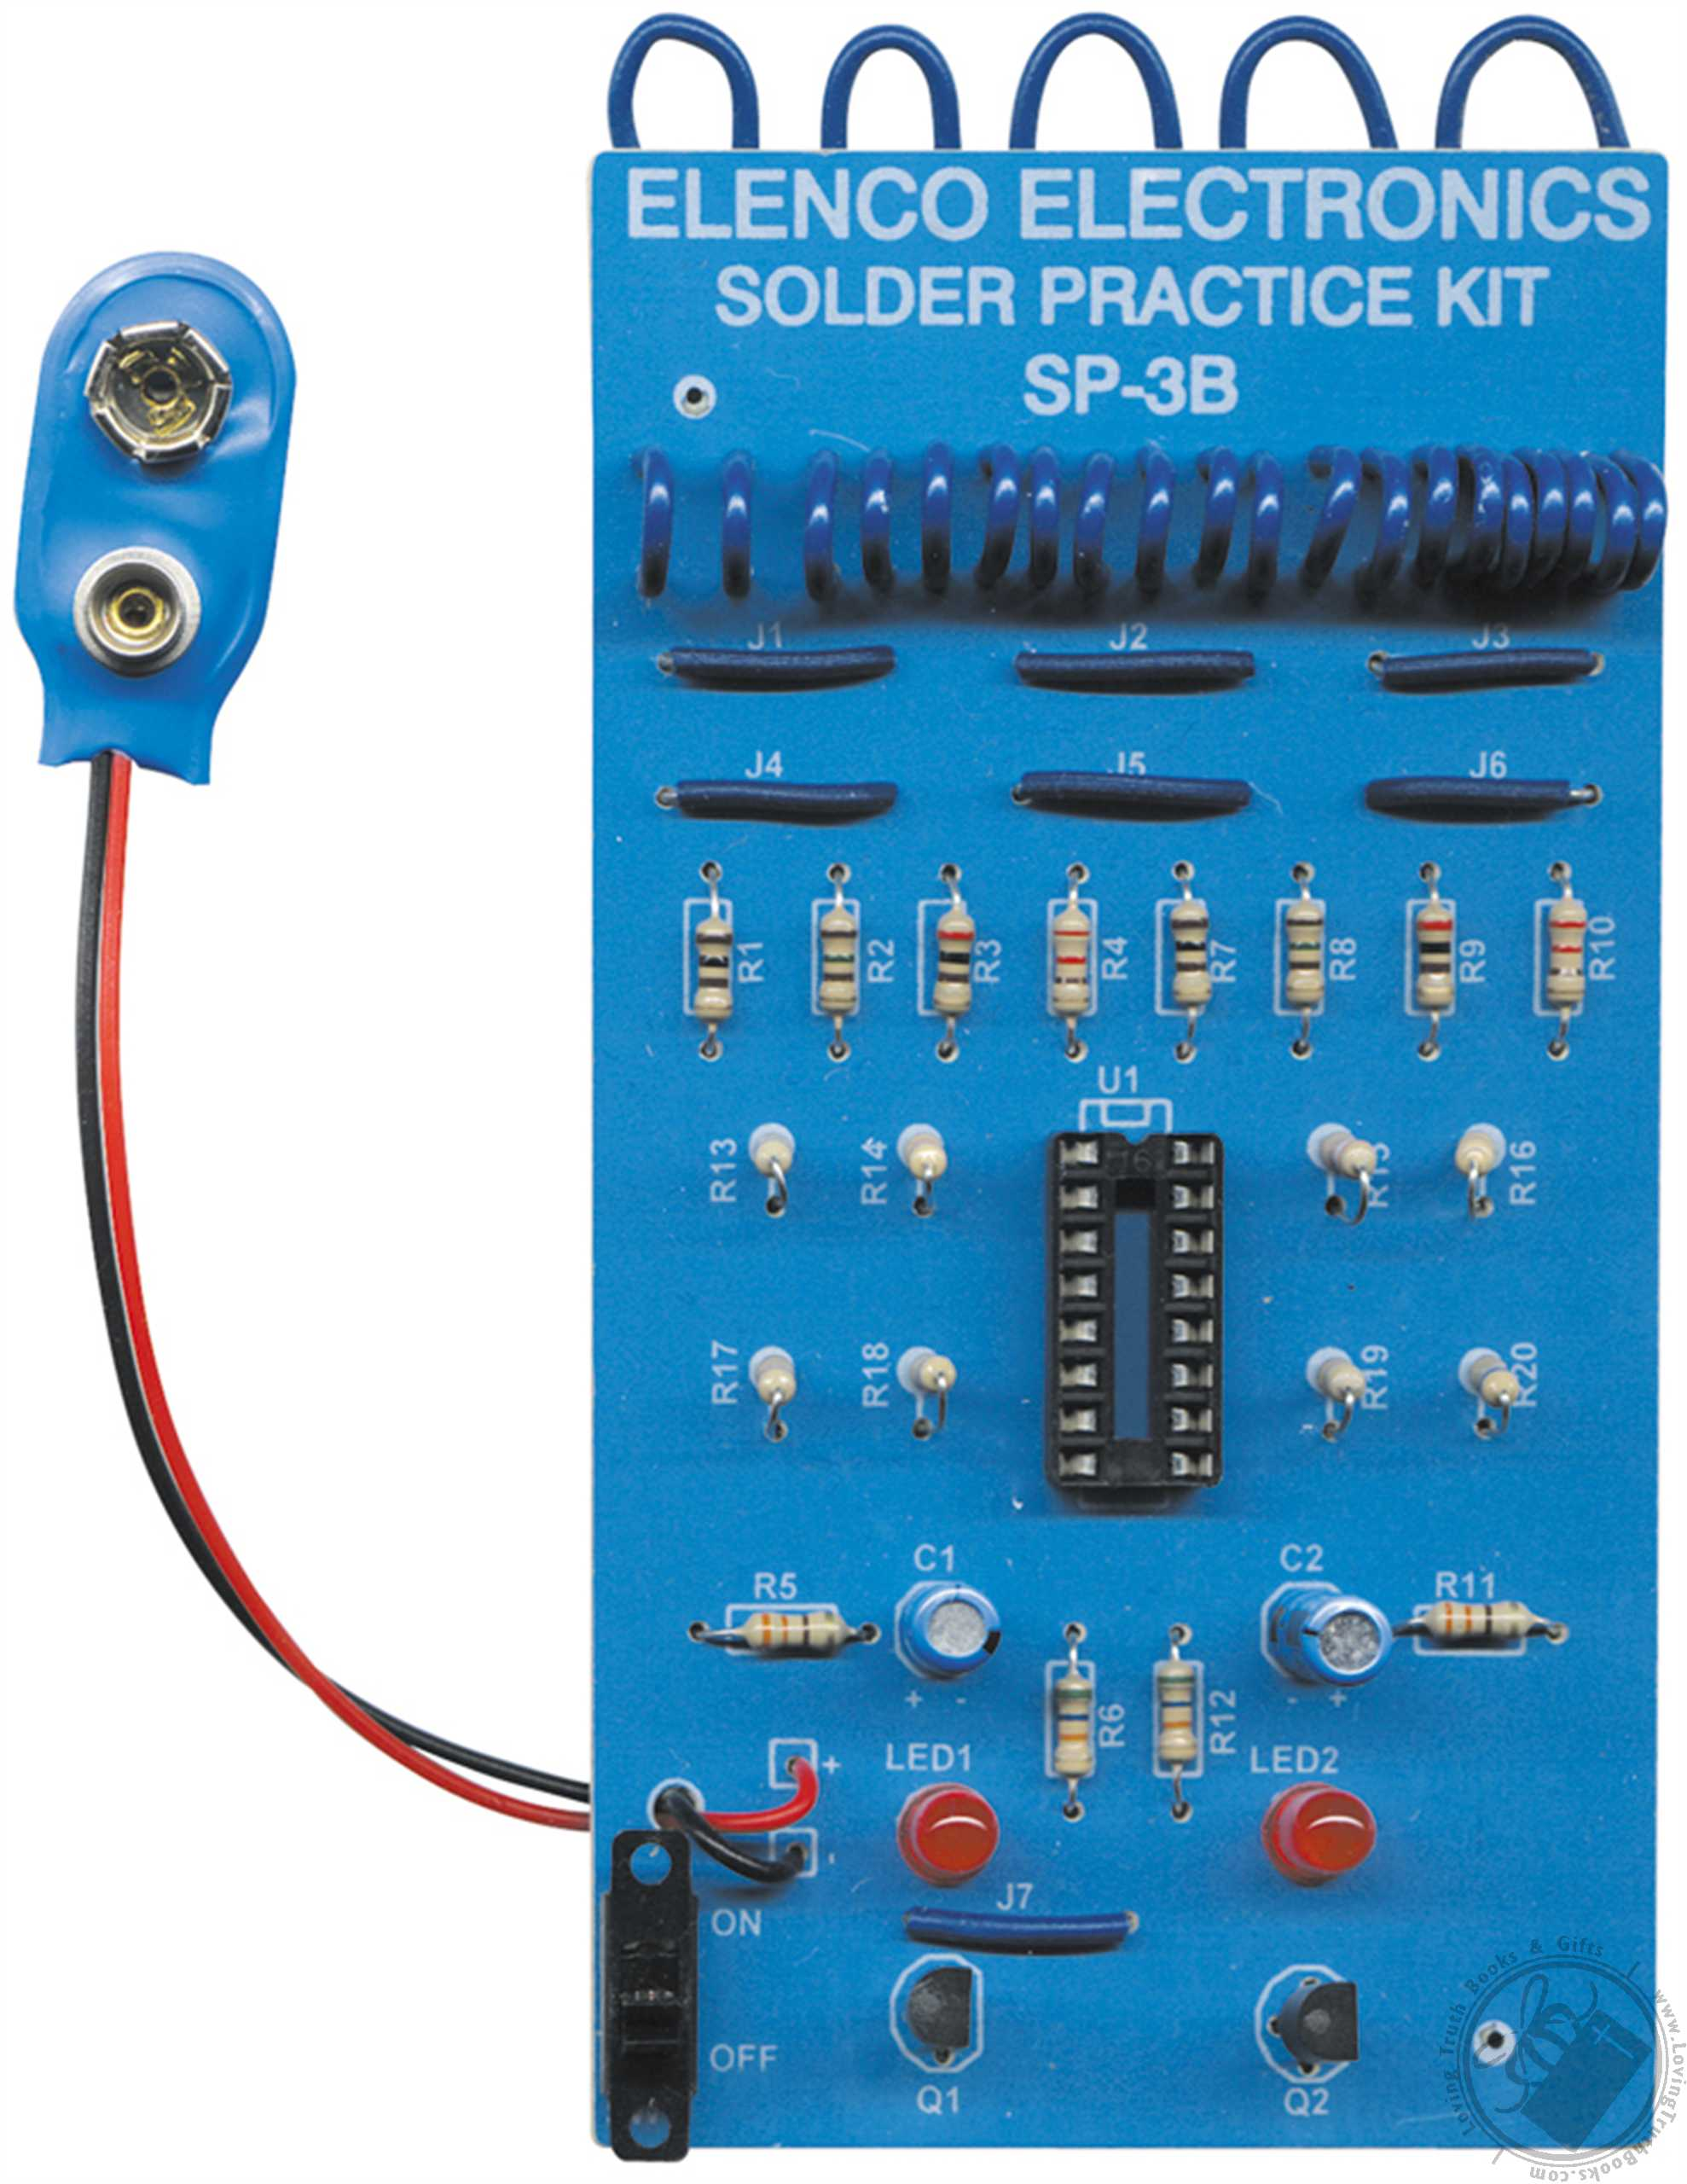 Electronic Education Kit For Novice Builders Of Technology Auto Whizzkits Breadboard Electronics Beginners Project Starter Elenco Solder Practice Model Sp